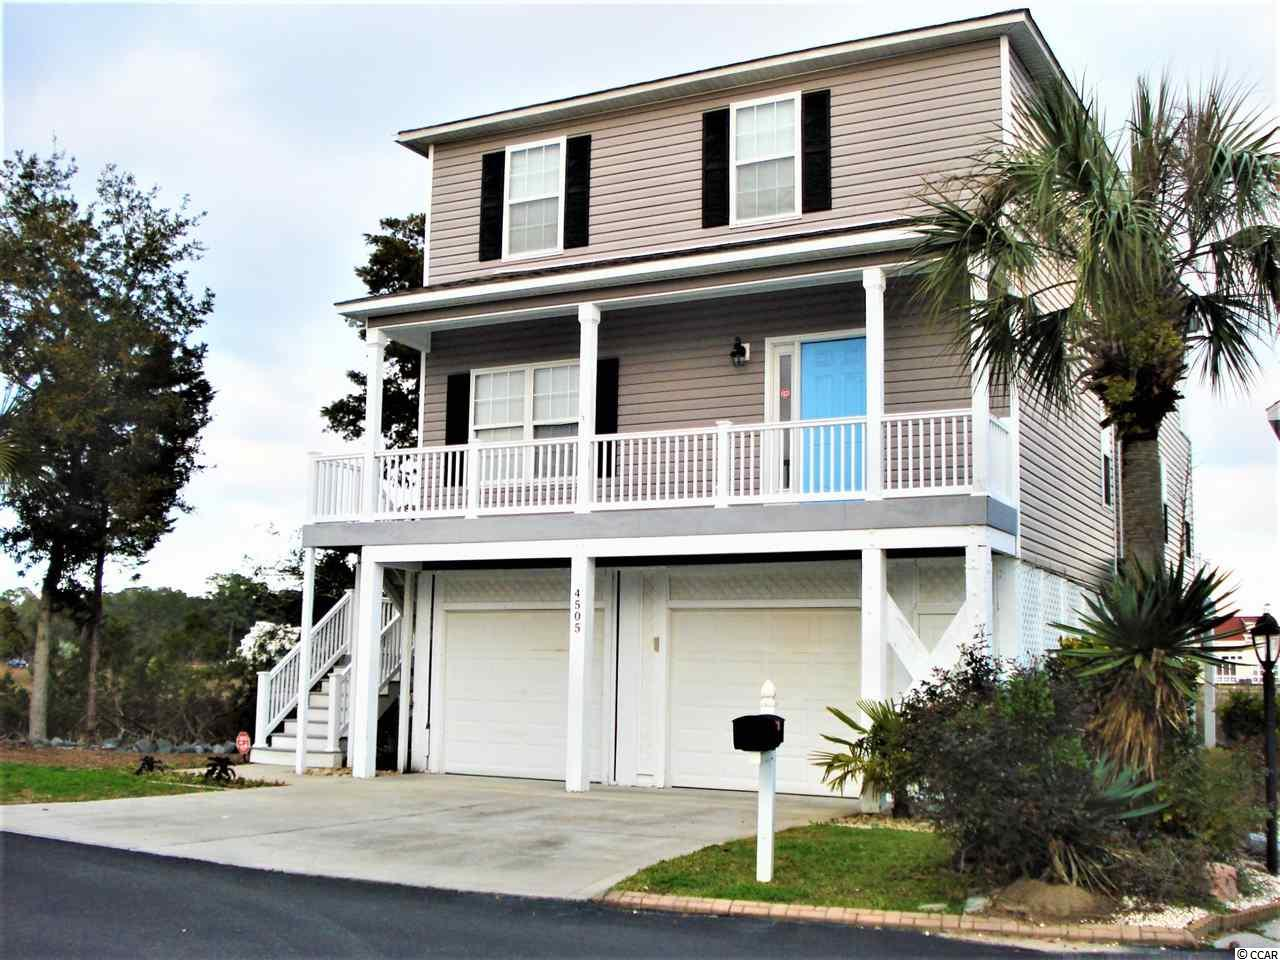 Stunning views of the marsh lands, the Intracoastal Waterway...Lets take a tour!!  This beautifully appointed four bedroom, three bath house sits in a most desireable Intracoastal Waterway community.  The open floor plan in the family room, dining area and kitchen lends itself to family gathering for activities together.  The kitchen has upgraded granite counter tops, appliances, a breakfast bar for extra dining space and a large dining area.  The great room joins both the kitchen and dining areas and is a comfortable size for the whole family with beautiful views of the marsh  complete with wild life birds etc to entertain the whole family from a wrap around porch to include enjoying the boat activity.  One bedroom is located on the main floor and has its own bathroom.  The laundry room was custom designed and is spacious.  The second level has two spacious bedroom with ample closet space and a full bathroom for convenience.  The master bedroom suite is very, very spacious and has it own private porch for enjoying views of the marsh and ICW in privacy; The mater bath has a jetted tub, double vanity and a shower.  The house has many upgrades to include: Two HVAC systems that are 2 years young; the vinyl siding was replaced two years ago; The duct work has a special system that prevents the growth  of mildew; EcoBee system allows complete control of both HVAC systems, garage doors via cell phone; all the porches/decks have been replaced with a composite material that resist rot, as well as the vinyl porch railings.....the exterior is basically maintenance free; there is crown molding for added beauty; all three toilets are one piece, no separate tanks for prevention of leaks; upgraded light fixtures; ceiling fans; gutters; parking for 5 cars with an oversized garage complete with storage: FEMA documents are in Associated  Docs-the house has never flooded.  Also, there are vent to allow water to flow through which would prevent water damage to house.  Security:  Gated community.  Also the house is protected by CPI Security System, RingDoor, as well as interior and exterior cameras that are monitored by  CPI and can be monitored by owner via cell phone.  This house is immaculate and inviting it has a dock for owners to enjoy fishing, socializing a day dock. This property has its own private boat dock with a hydraulic lift that comes with this house.  There is Cricket Cove Marina adjacent to the property and boat dock for gas and supplies for a day of boating!!! Get acquainted with the Little River, a quaint little fishing village which boasts some of the best restaurants along the South Carolina coast..superb italian, french, seafood, fine dining, steak and only three miles to the famous Calabash, noted for its seafood restaurants!!  If you are looking to enjoy coastal living....LOOK no more, it's here.